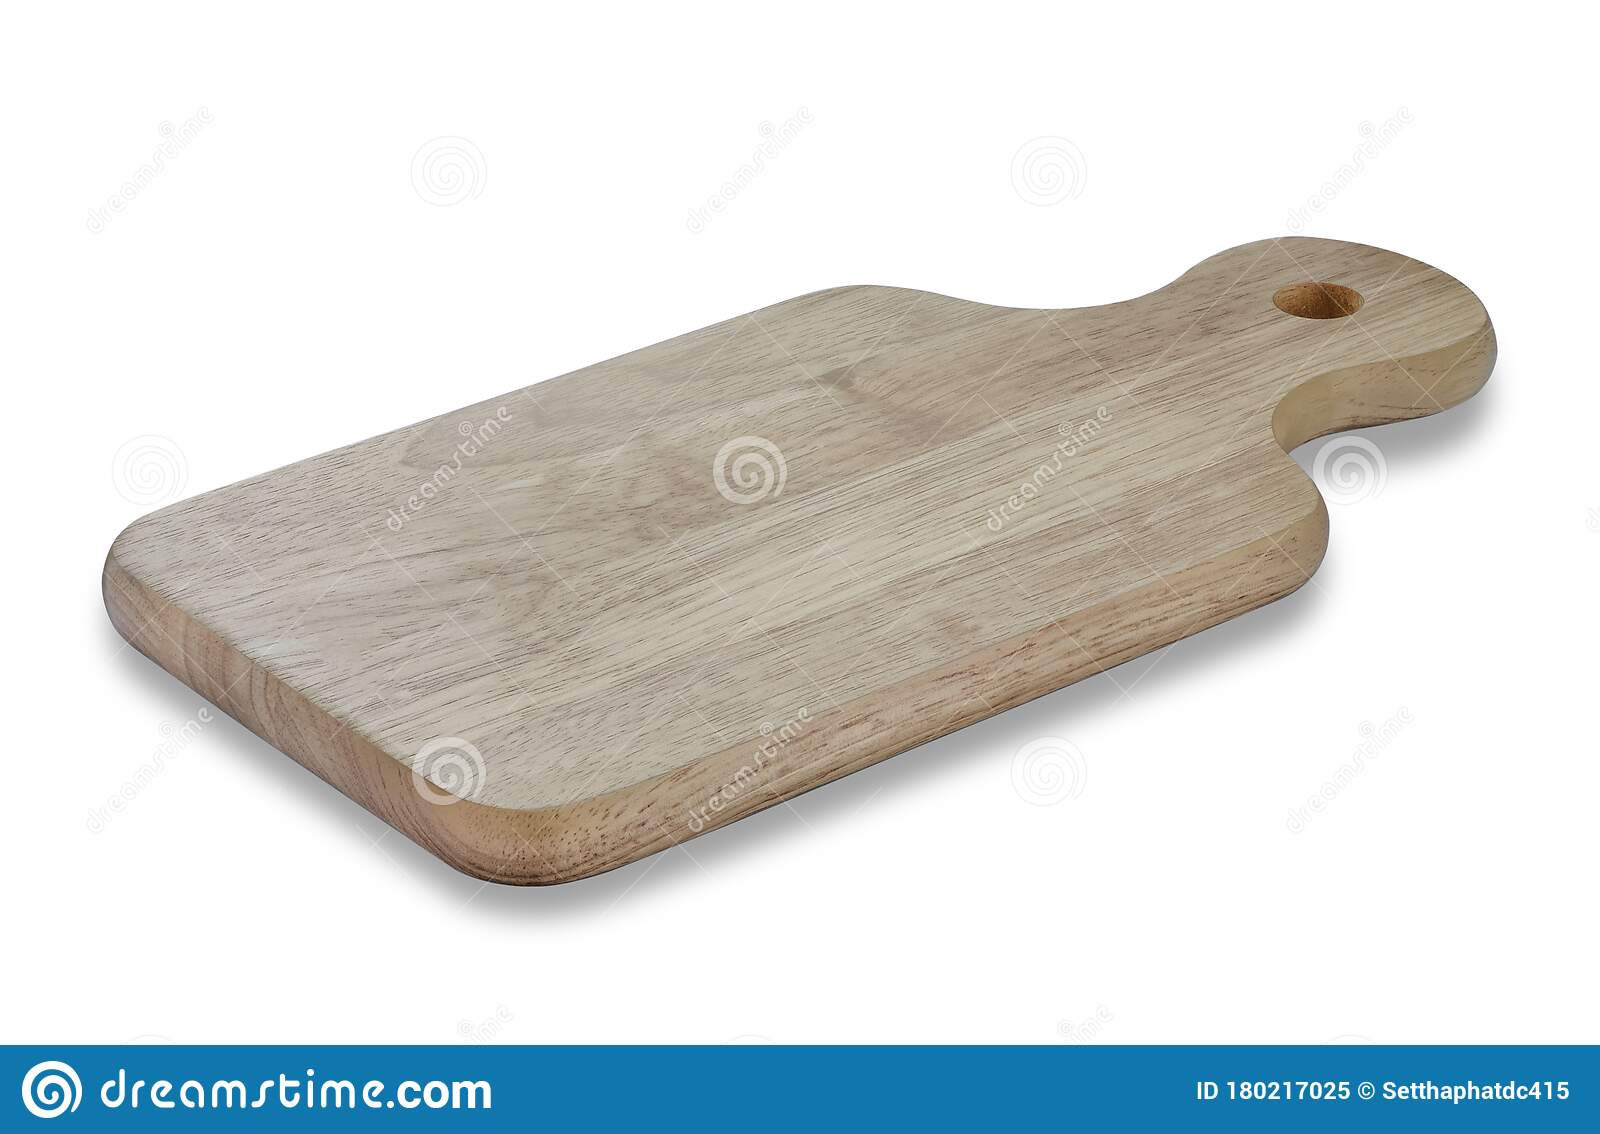 Top View Of Wood Cutting Board With Handles And Hole For Hanging Stock Image Image Of Linen Cook 180217025